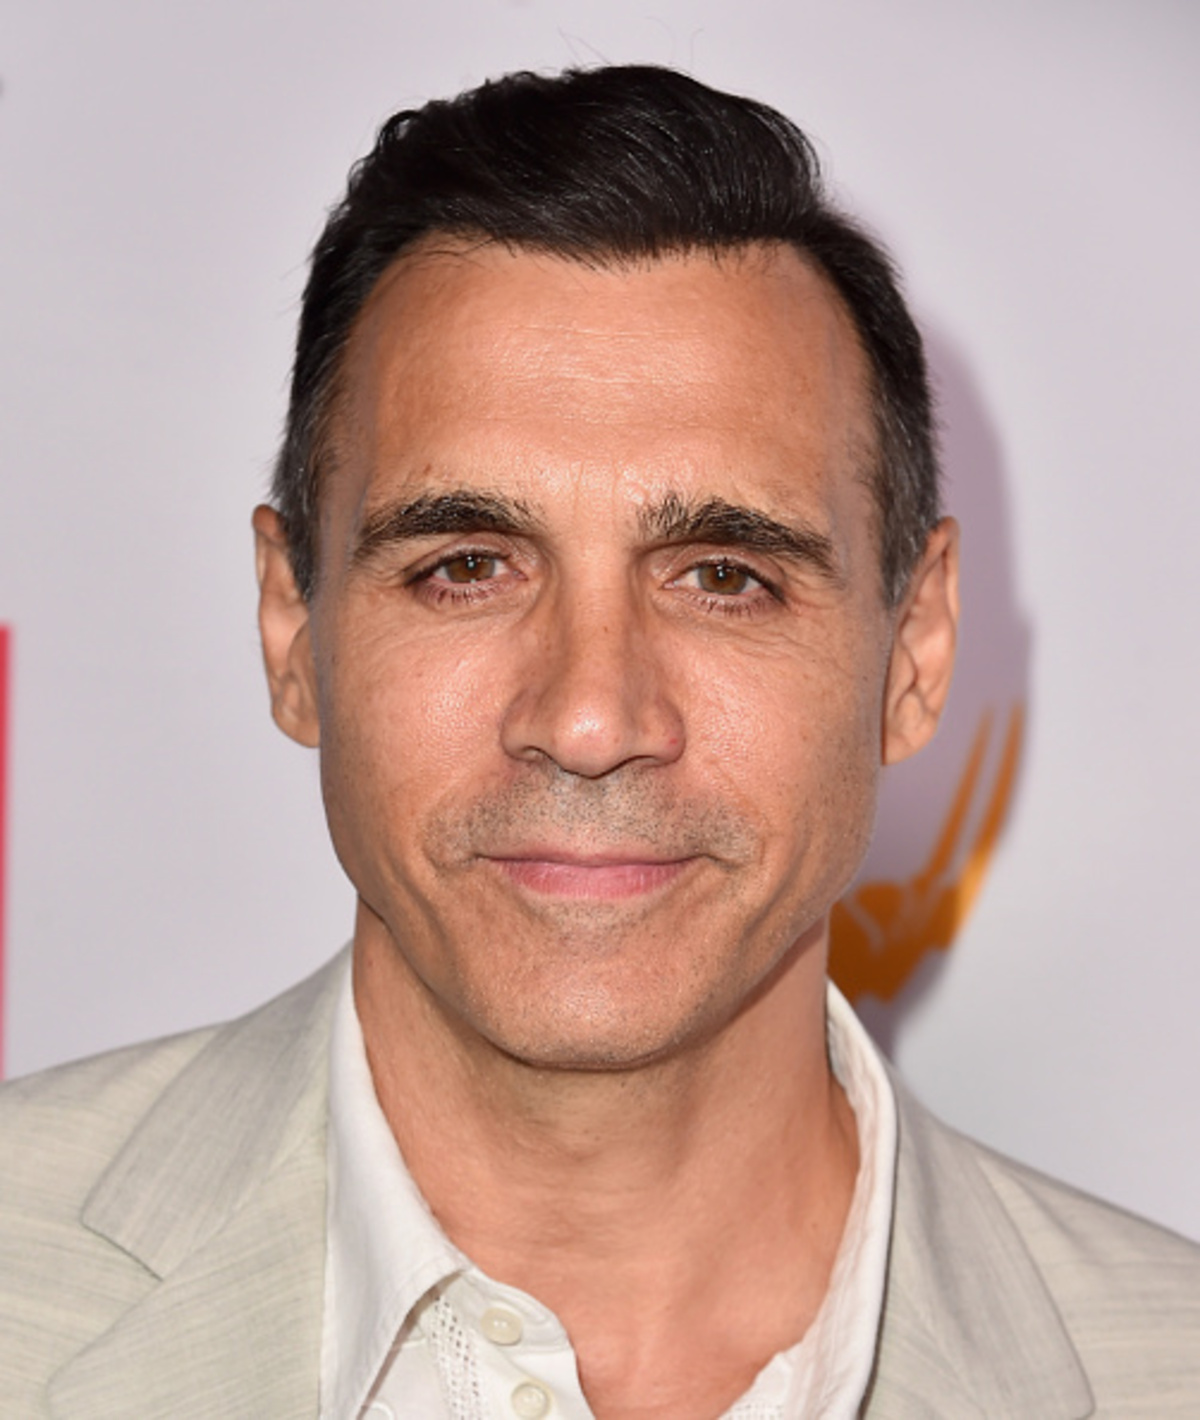 The 61-year old son of father (?) and mother(?) Adrian Paul in 2020 photo. Adrian Paul earned a million dollar salary - leaving the net worth at million in 2020